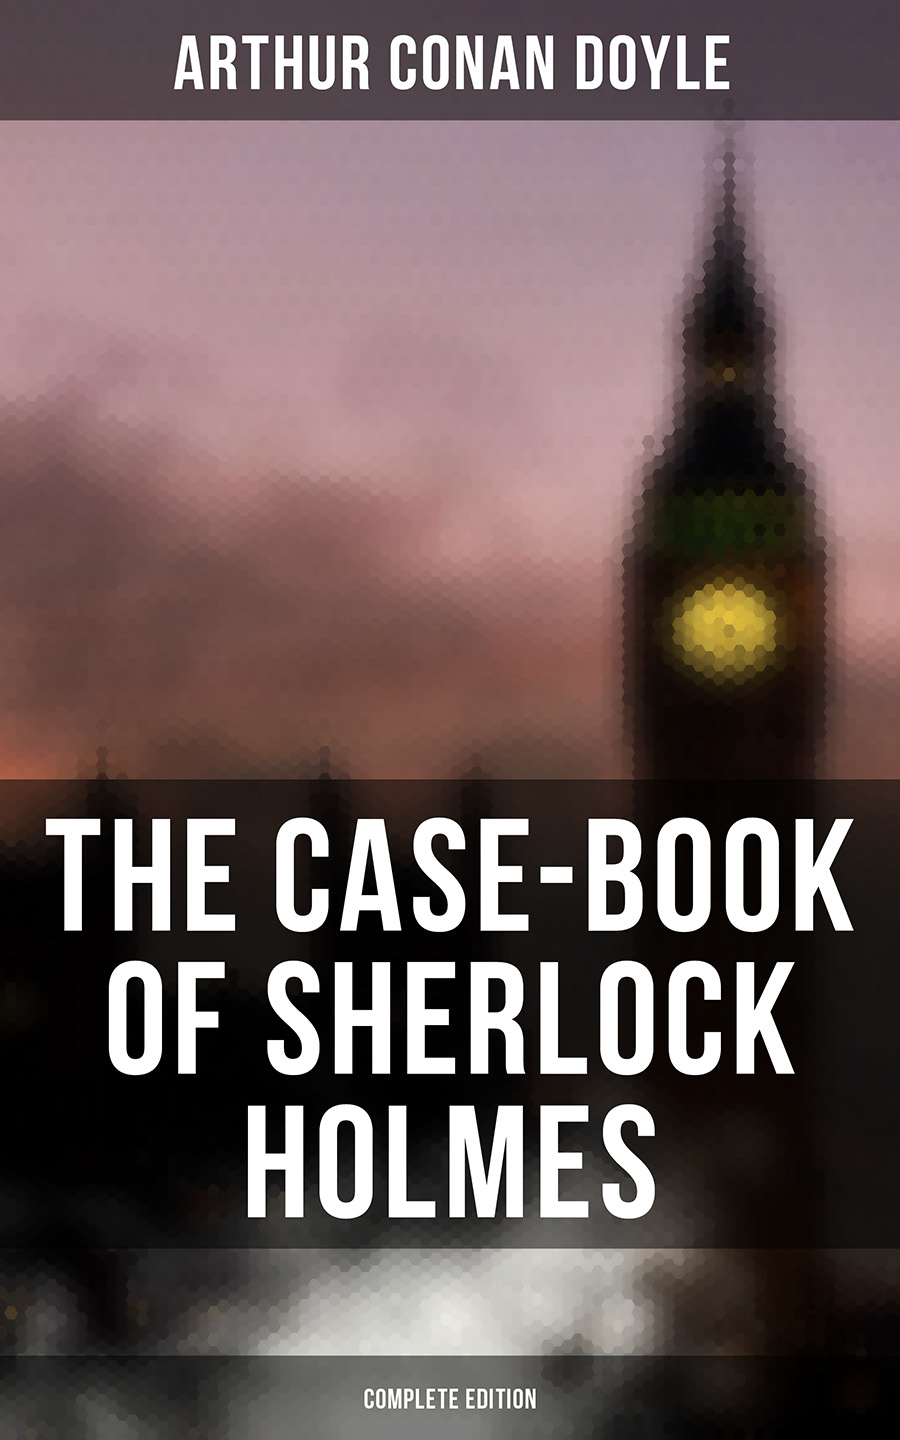 The Case-Book of Sherlock Holmes (Complete Edition)